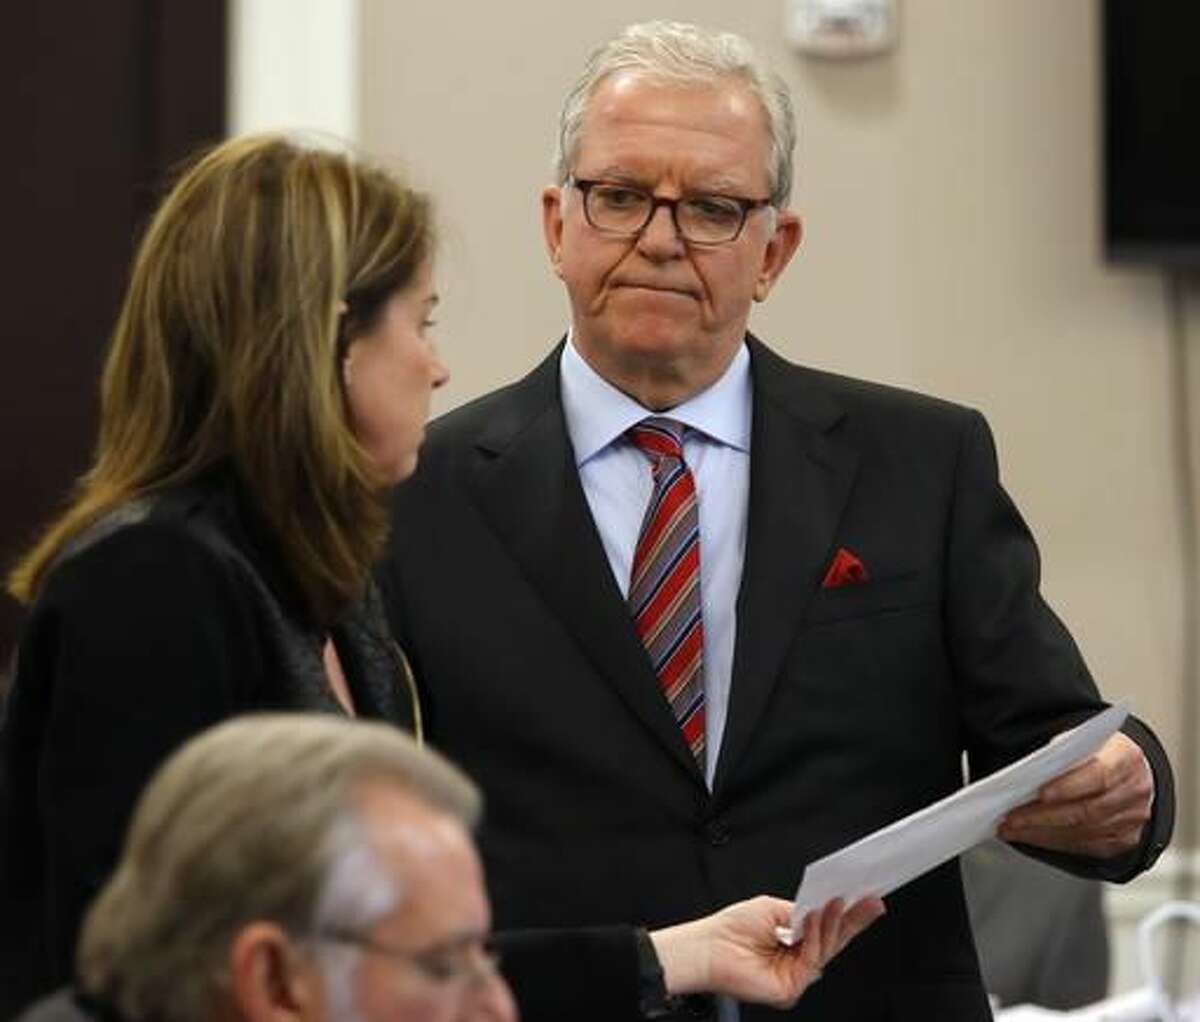 Defense attorney Andy Savage, right, speaks with Ninth Circuit Solicitor Scarlett Wilson in court during the murder trial of former North Charleston police officer Michael Slager at the Charleston County court in Charleston, S.C., Monday, Nov. 28, 2016. A judge is considering whether jurors will visit the spot where a white former South Carolina police officer is accused of shooting and killing an unarmed black man in North Charleston. (Grace Beahm/Post and Courier via AP, Pool)